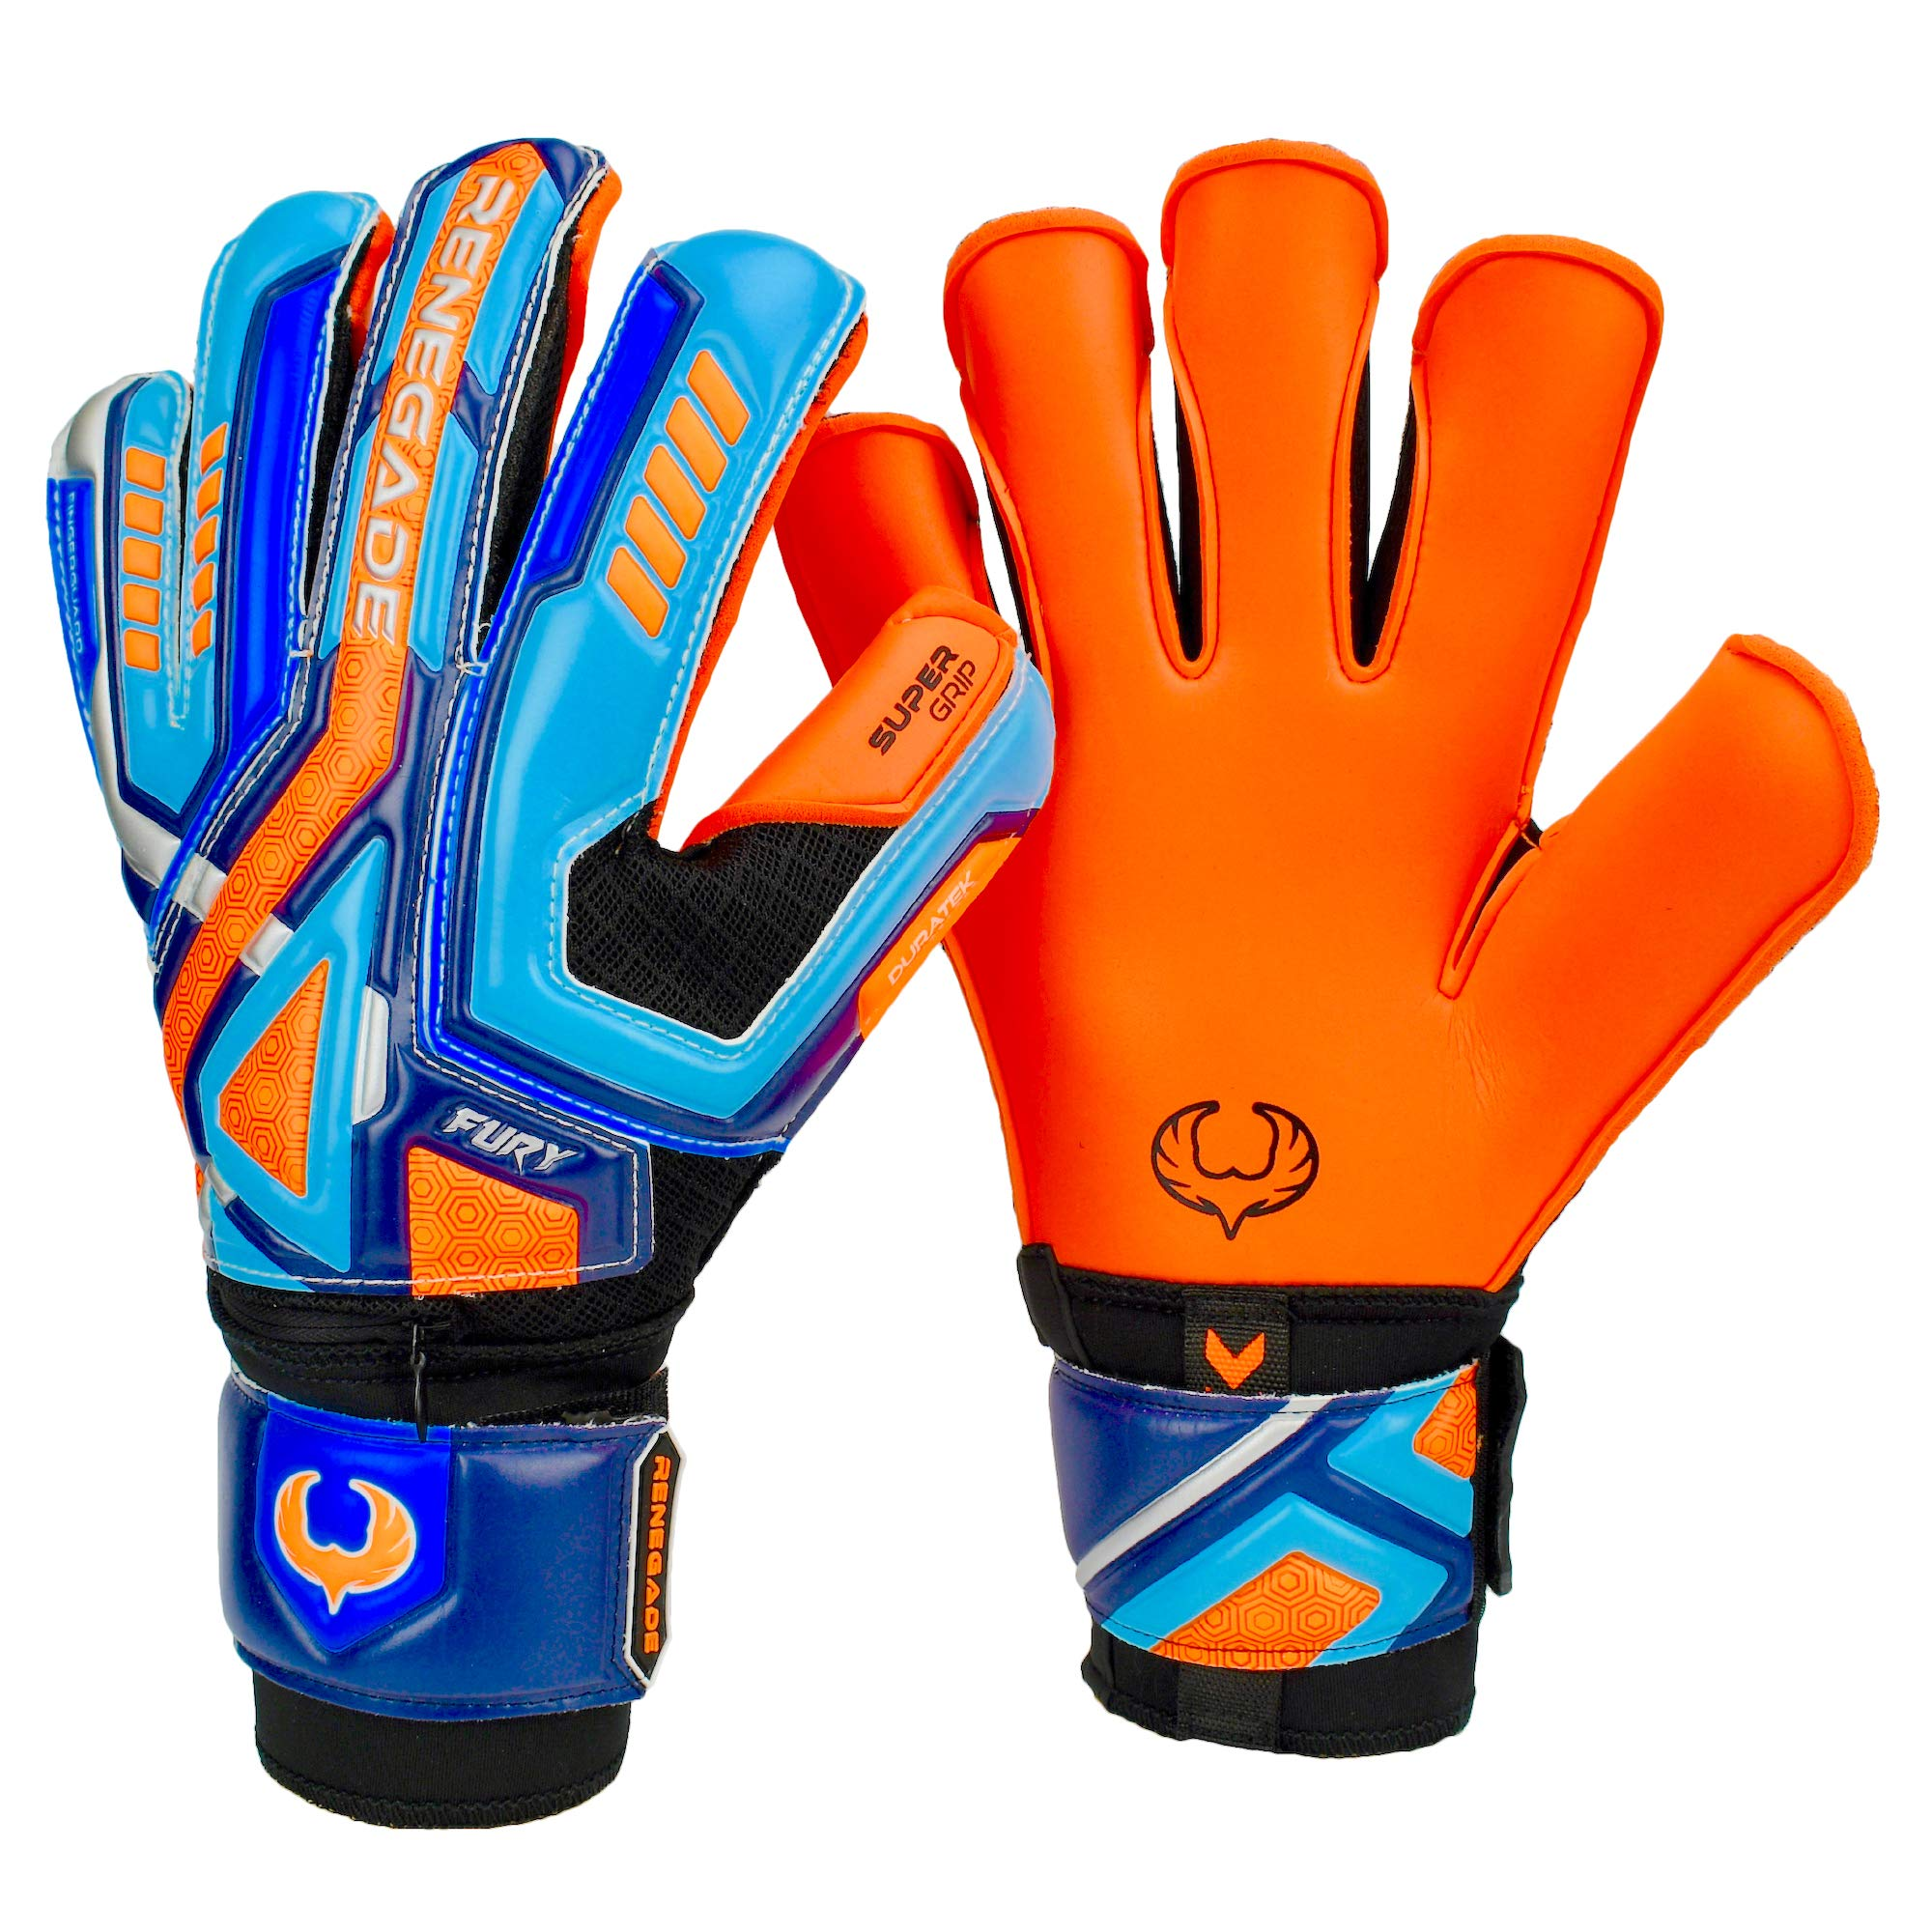 Renegade GK Fury Siege Roll Hybrid Cut Pro Level 4 Youth Goalkeeper Gloves with Pro-Tek Fingersaves - Kids Soccer Goalie Gloves Youth Size 7 - Boys & Girls Goalie Gloves Soccer - Blue, Orange, Black by Renegade GK (Image #1)